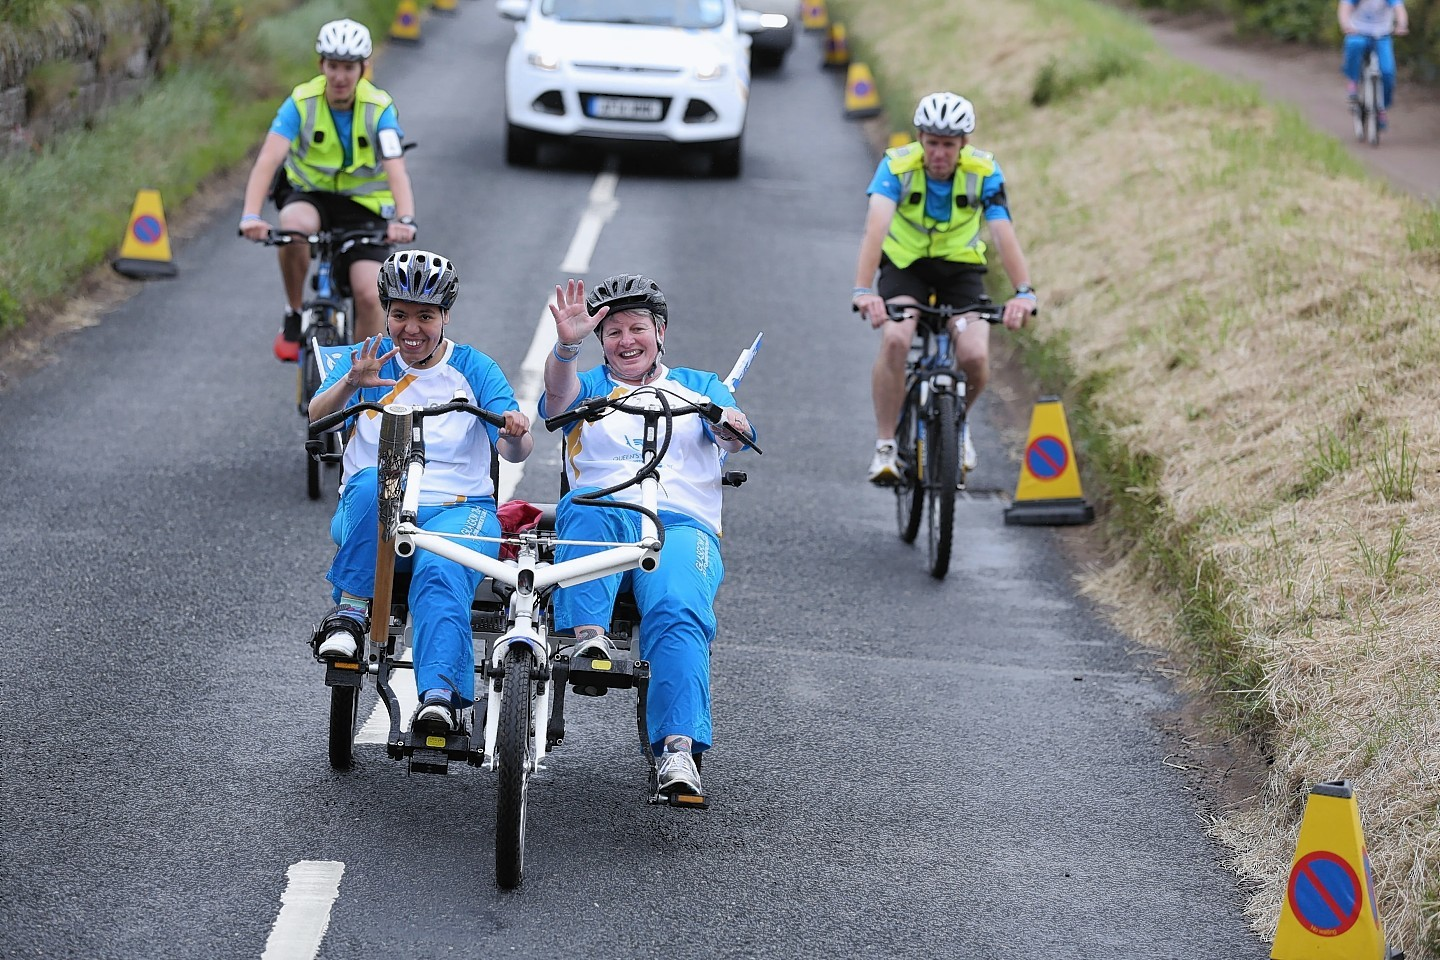 The Queen's Baton Relay